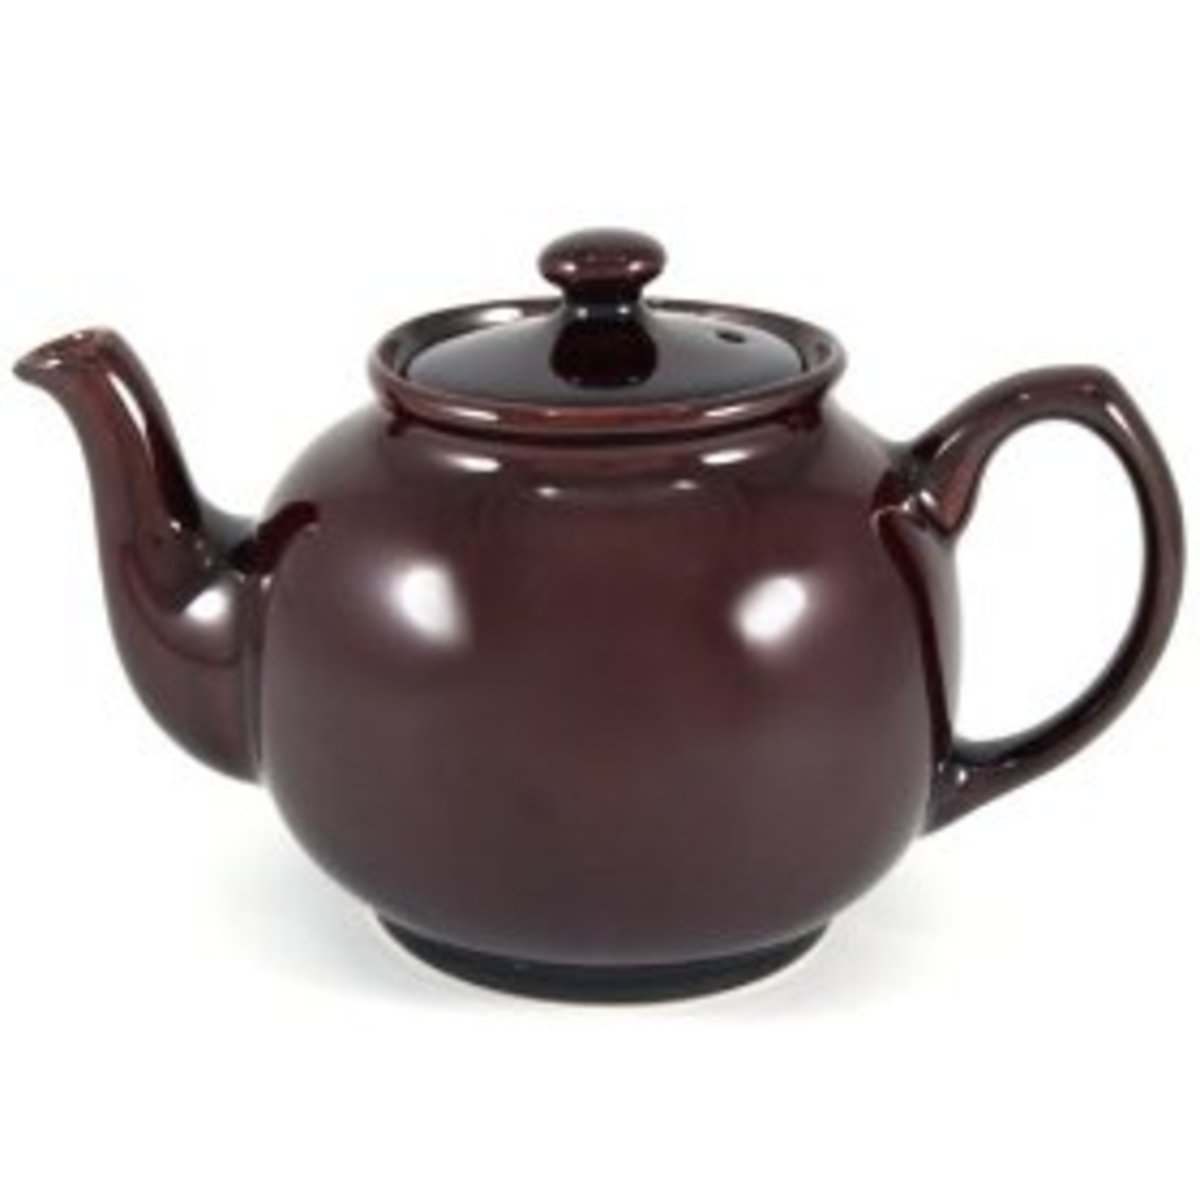 Brown Betty Teapot Guide to Buying Brown Betty Teapots Online